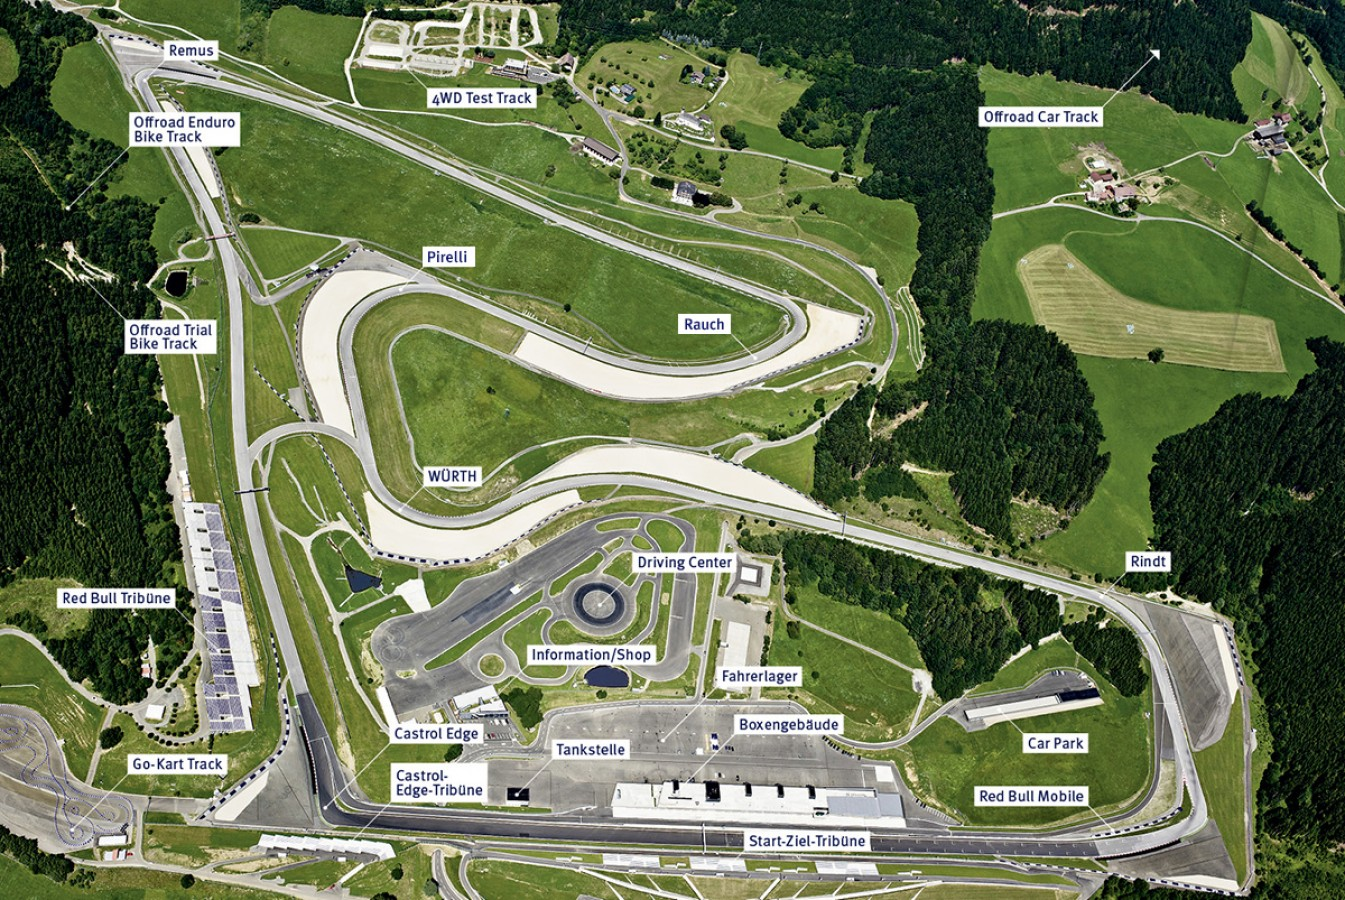 Austria Might Get Back in MotoGP with the Red Bull Ring - autoevolution